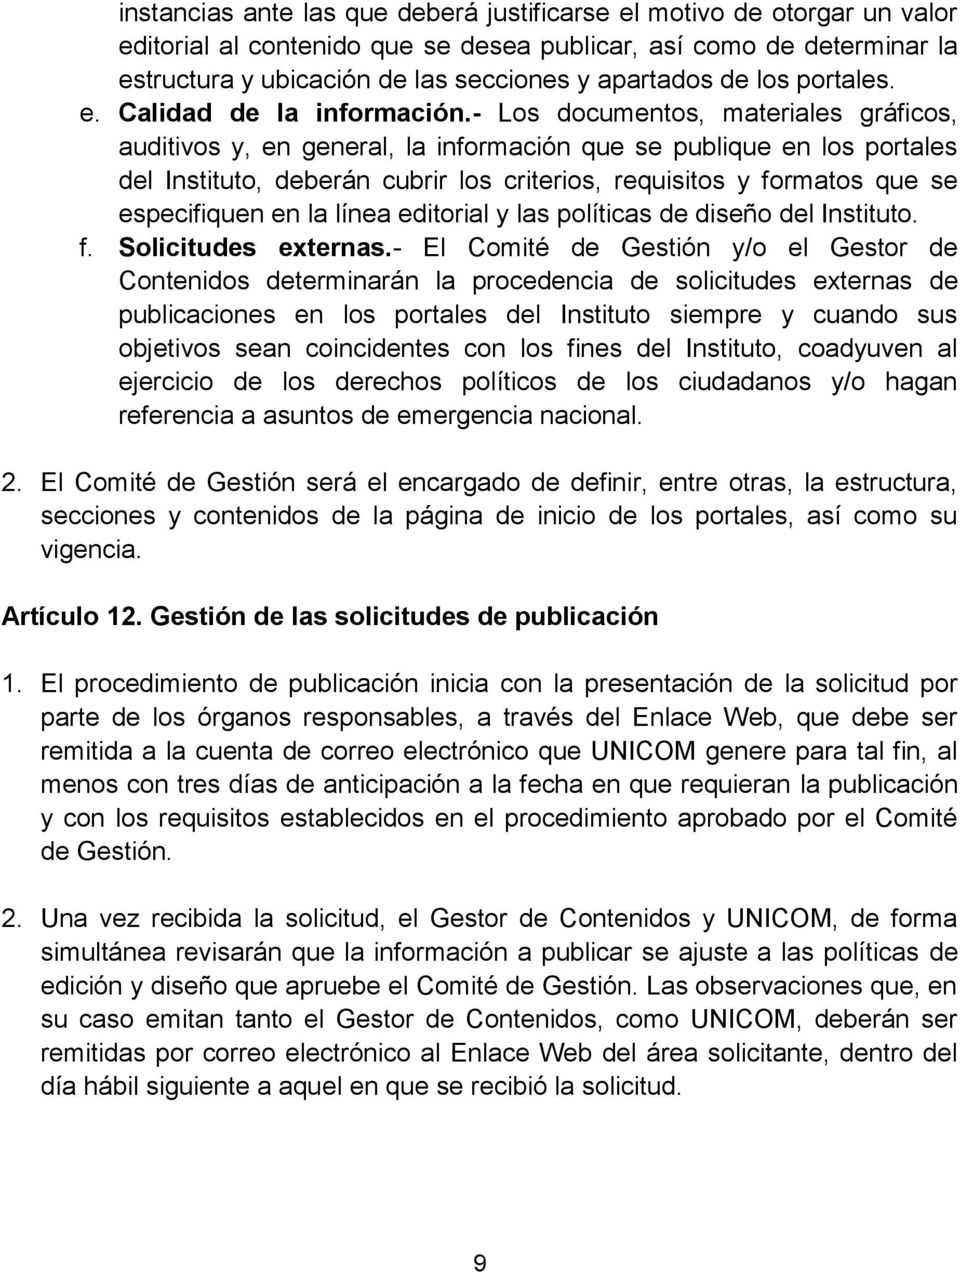 - Los documentos, materiales gráficos, auditivos y, en general, la información que se publique en los portales del Instituto, deberán cubrir los criterios, requisitos y formatos que se especifiquen